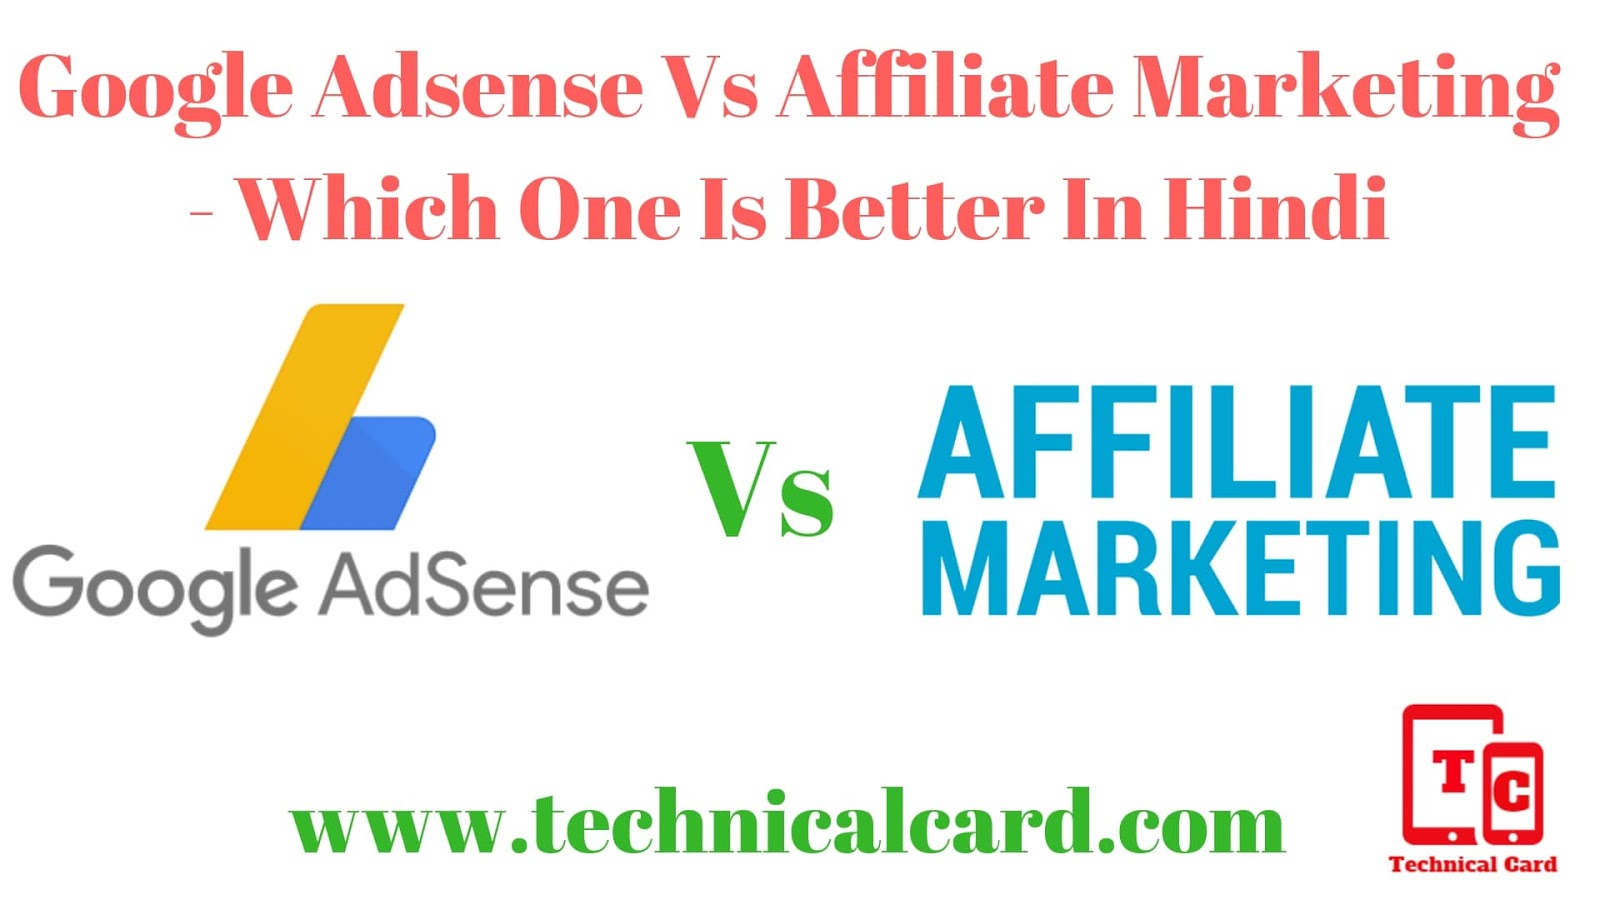 Google Adsense Vs Affiliate Marketing - Which One Is Better In Hindi, Google adsense aur affiliate marketing me kya difference hai,